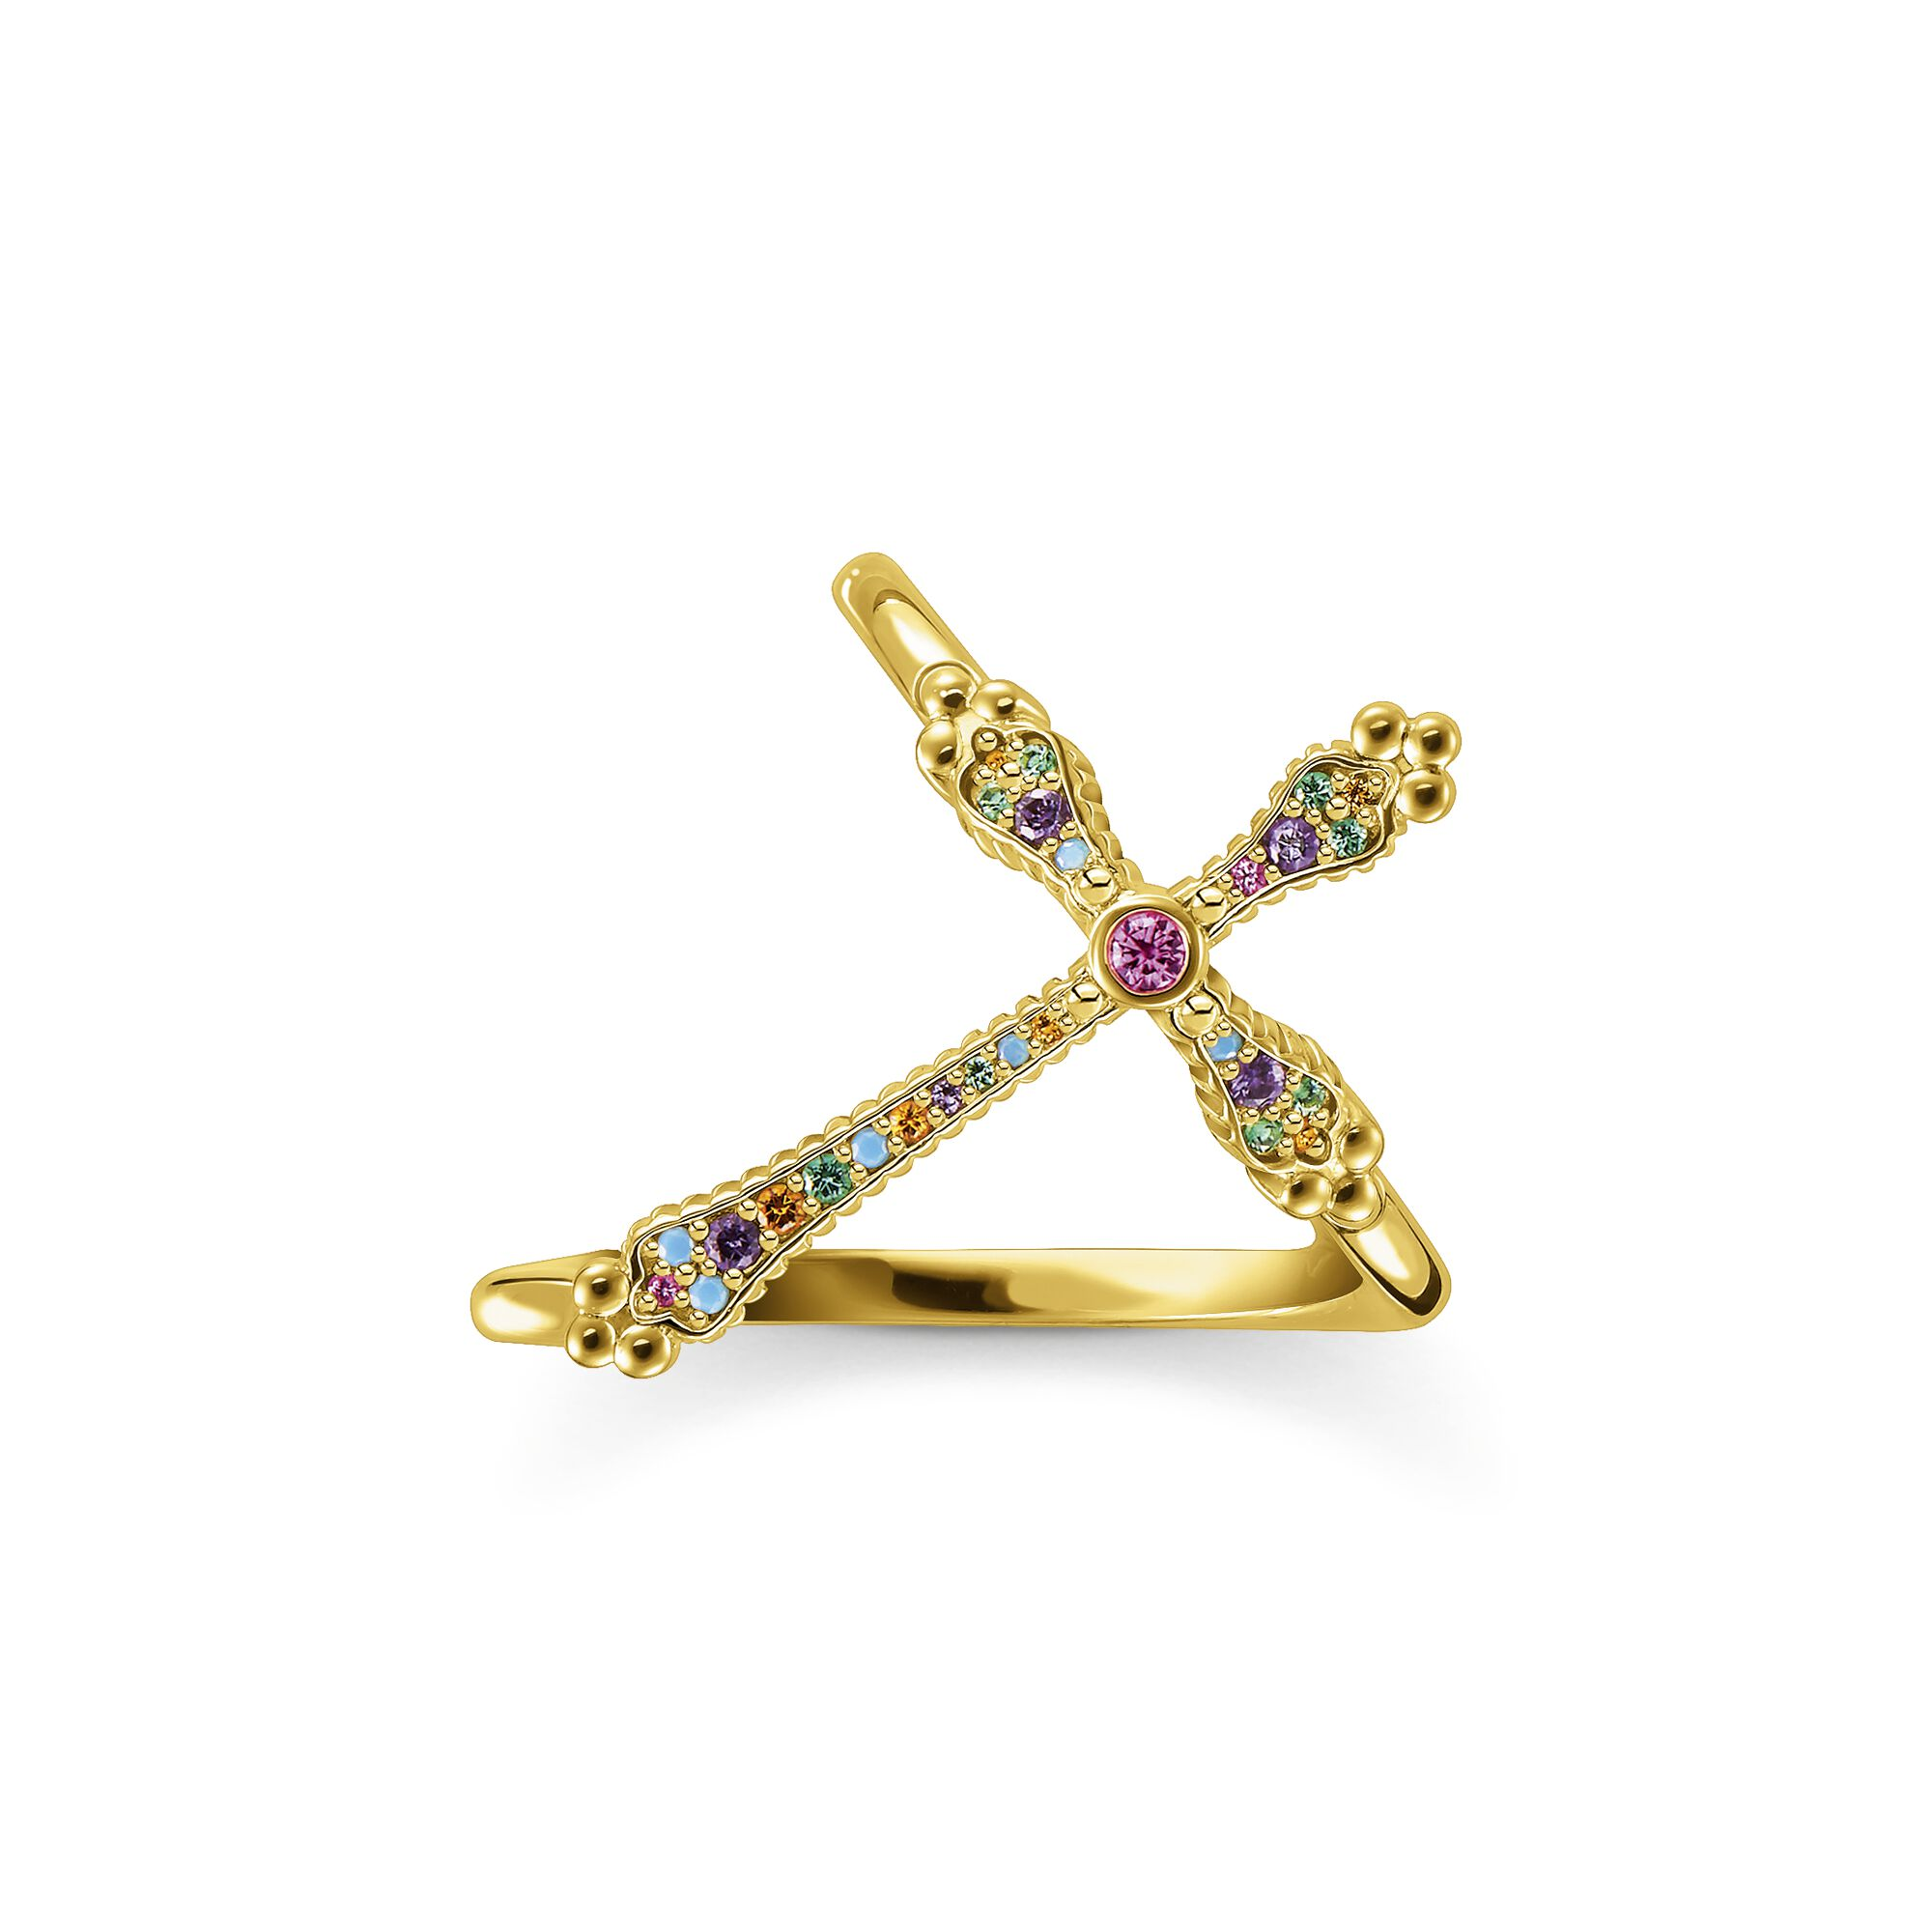 Ring Royalty cross gold colourful stones